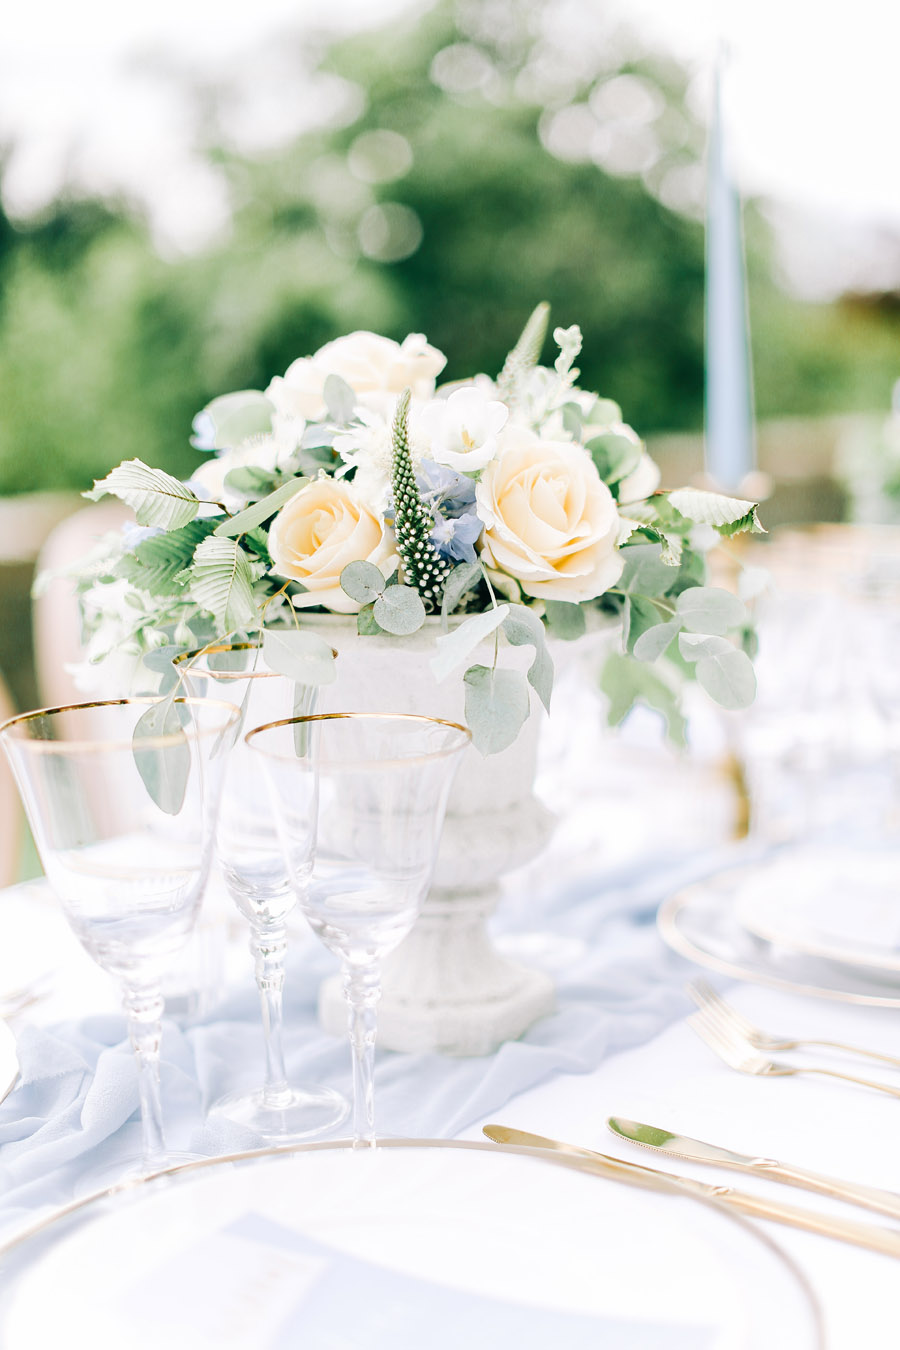 Enchanted Fairytale inspired shoot at Hamswell House, photography credit Charlotte Wise, wedding planner Lucy Ann Reid (2)